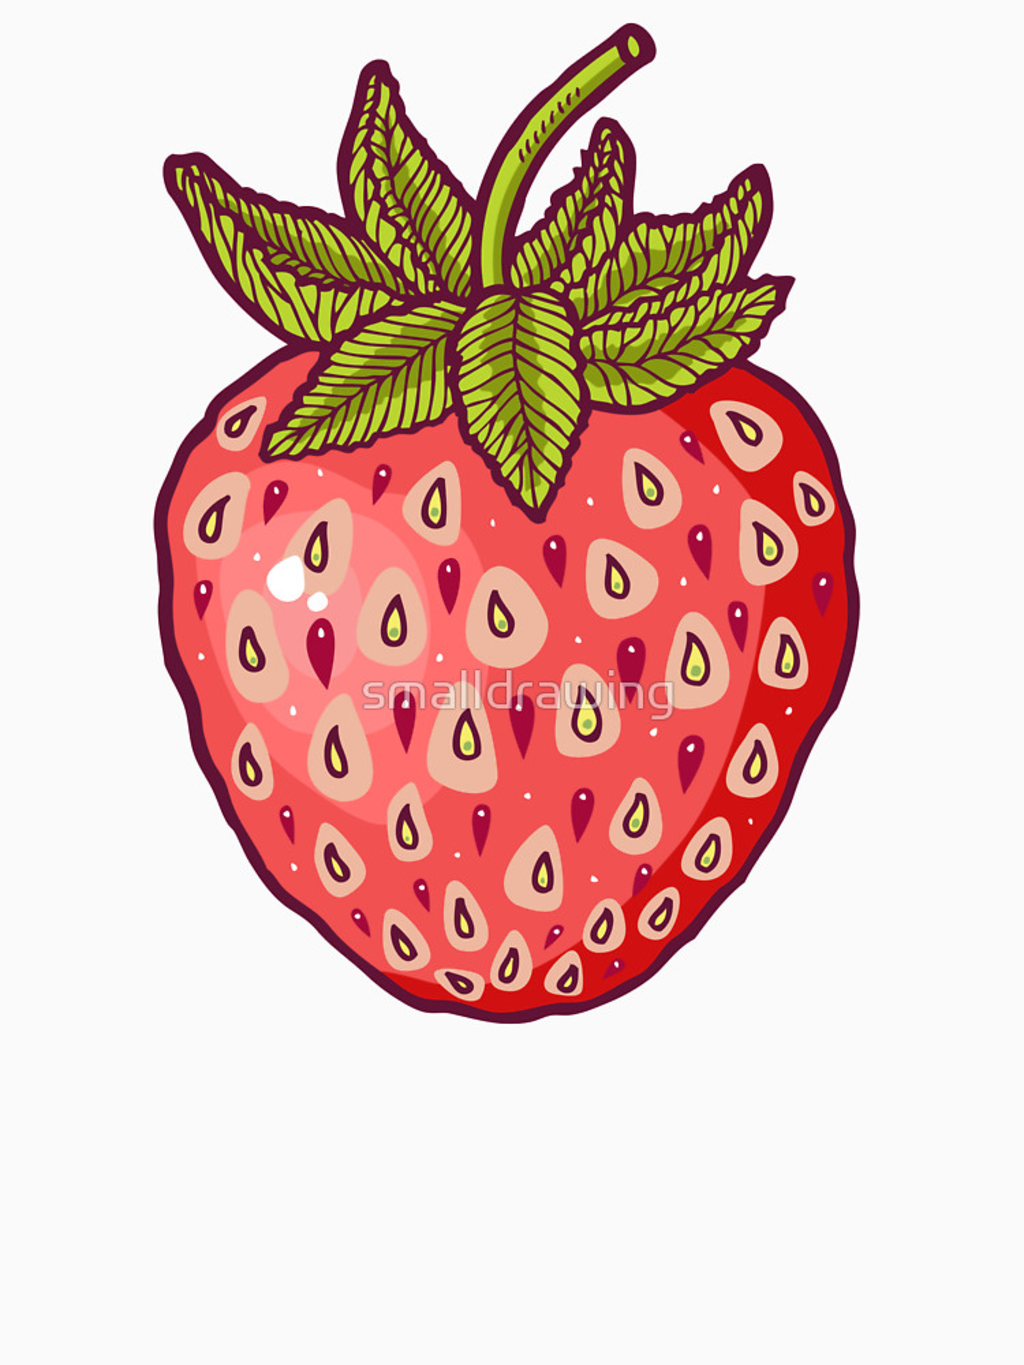 RedBubble: strawberry fields